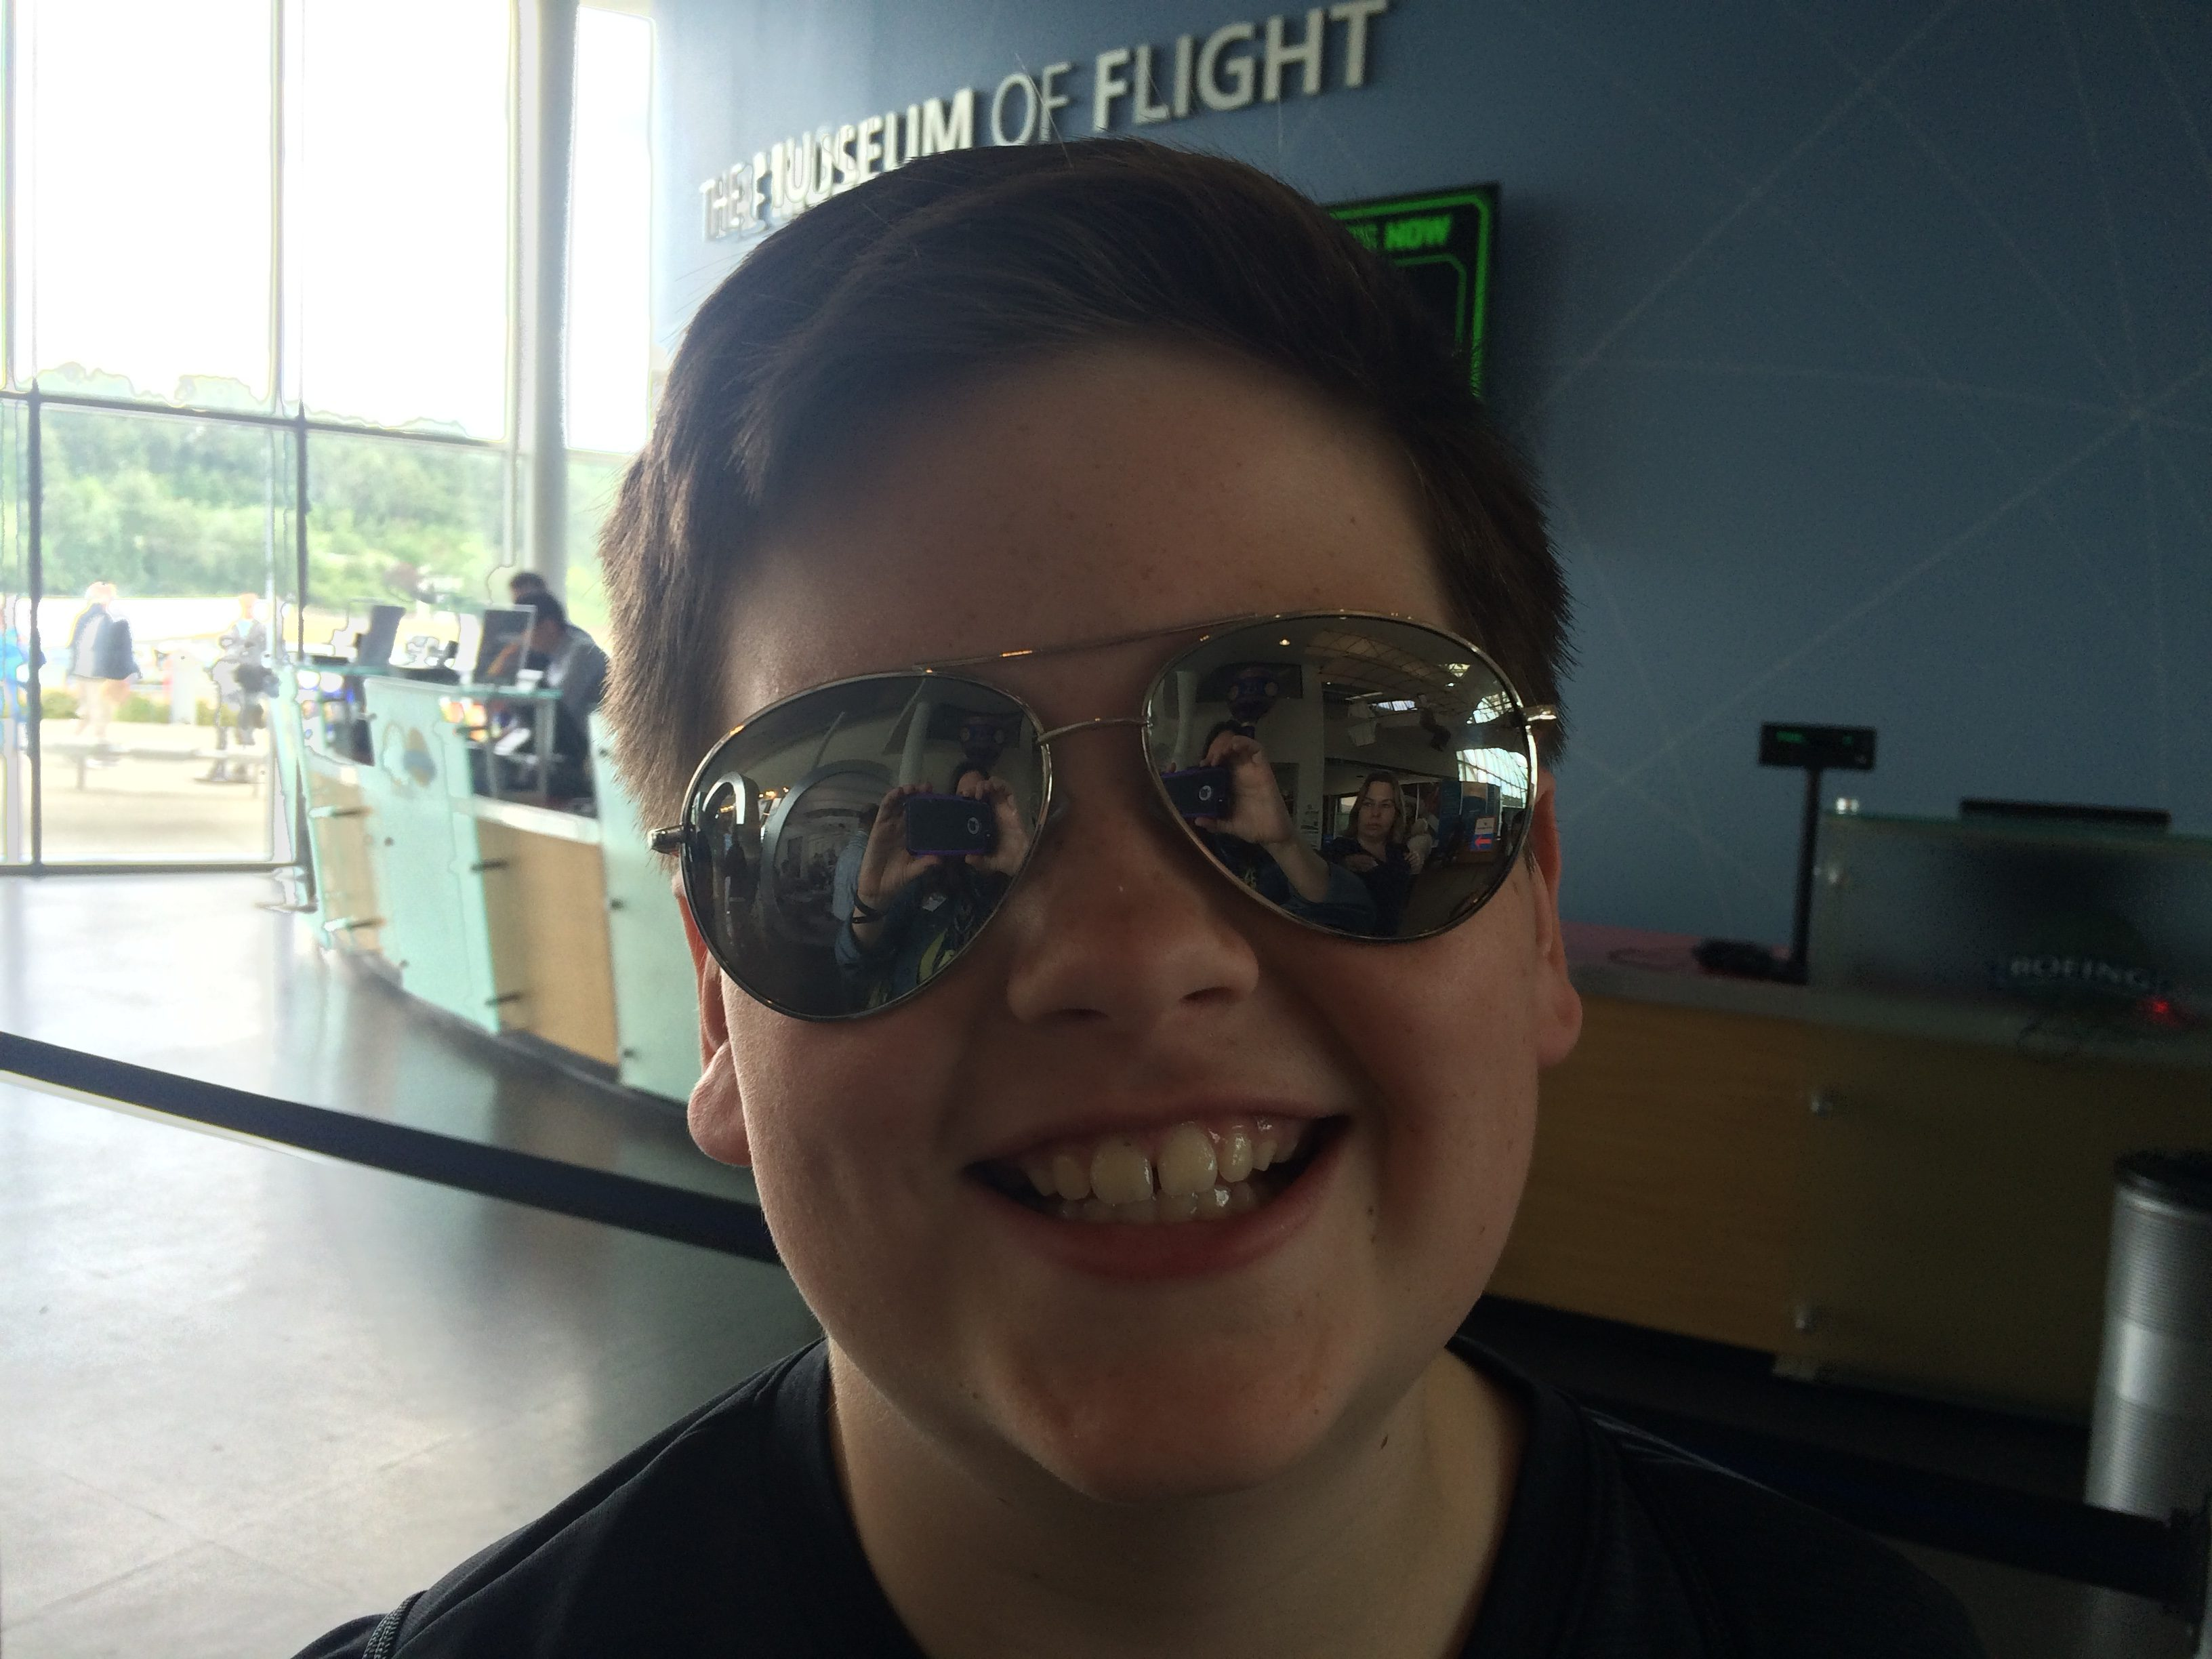 Aviator sunglasses, a solid souvenir from the Museum of Flight